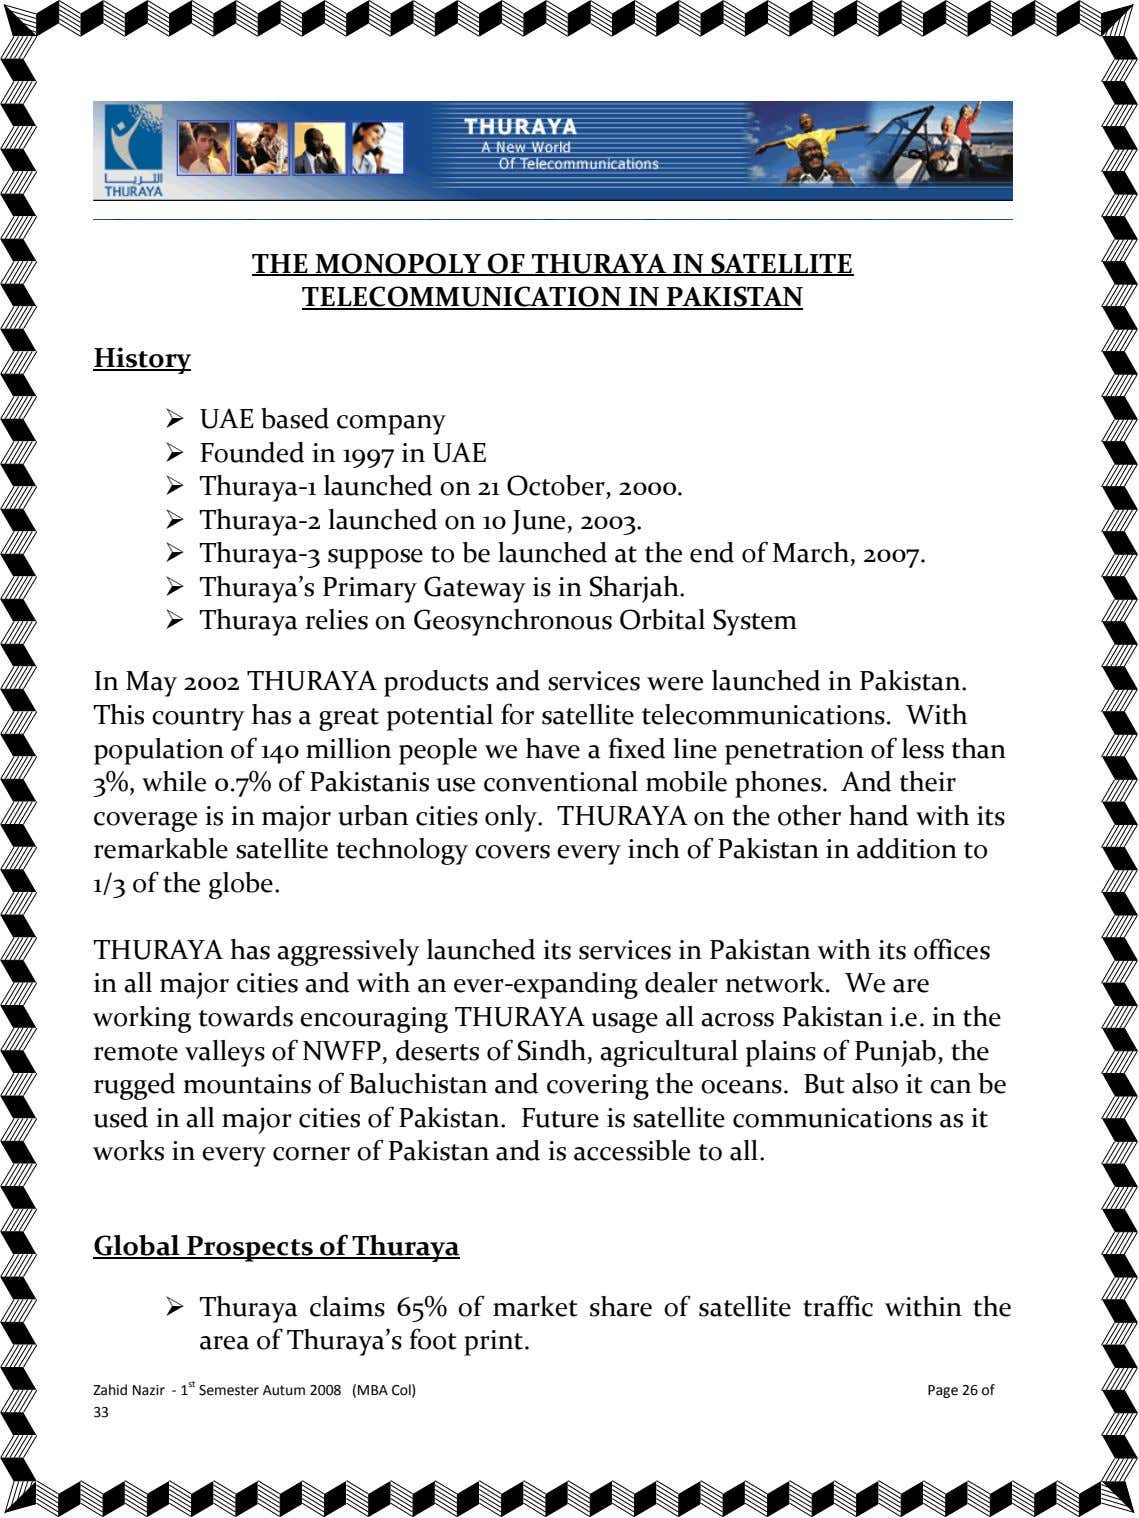 THE MONOPOLY OF THURAYA IN SATELLITE TELECOMMUNICATION IN PAKISTAN History UAE based company Founded in